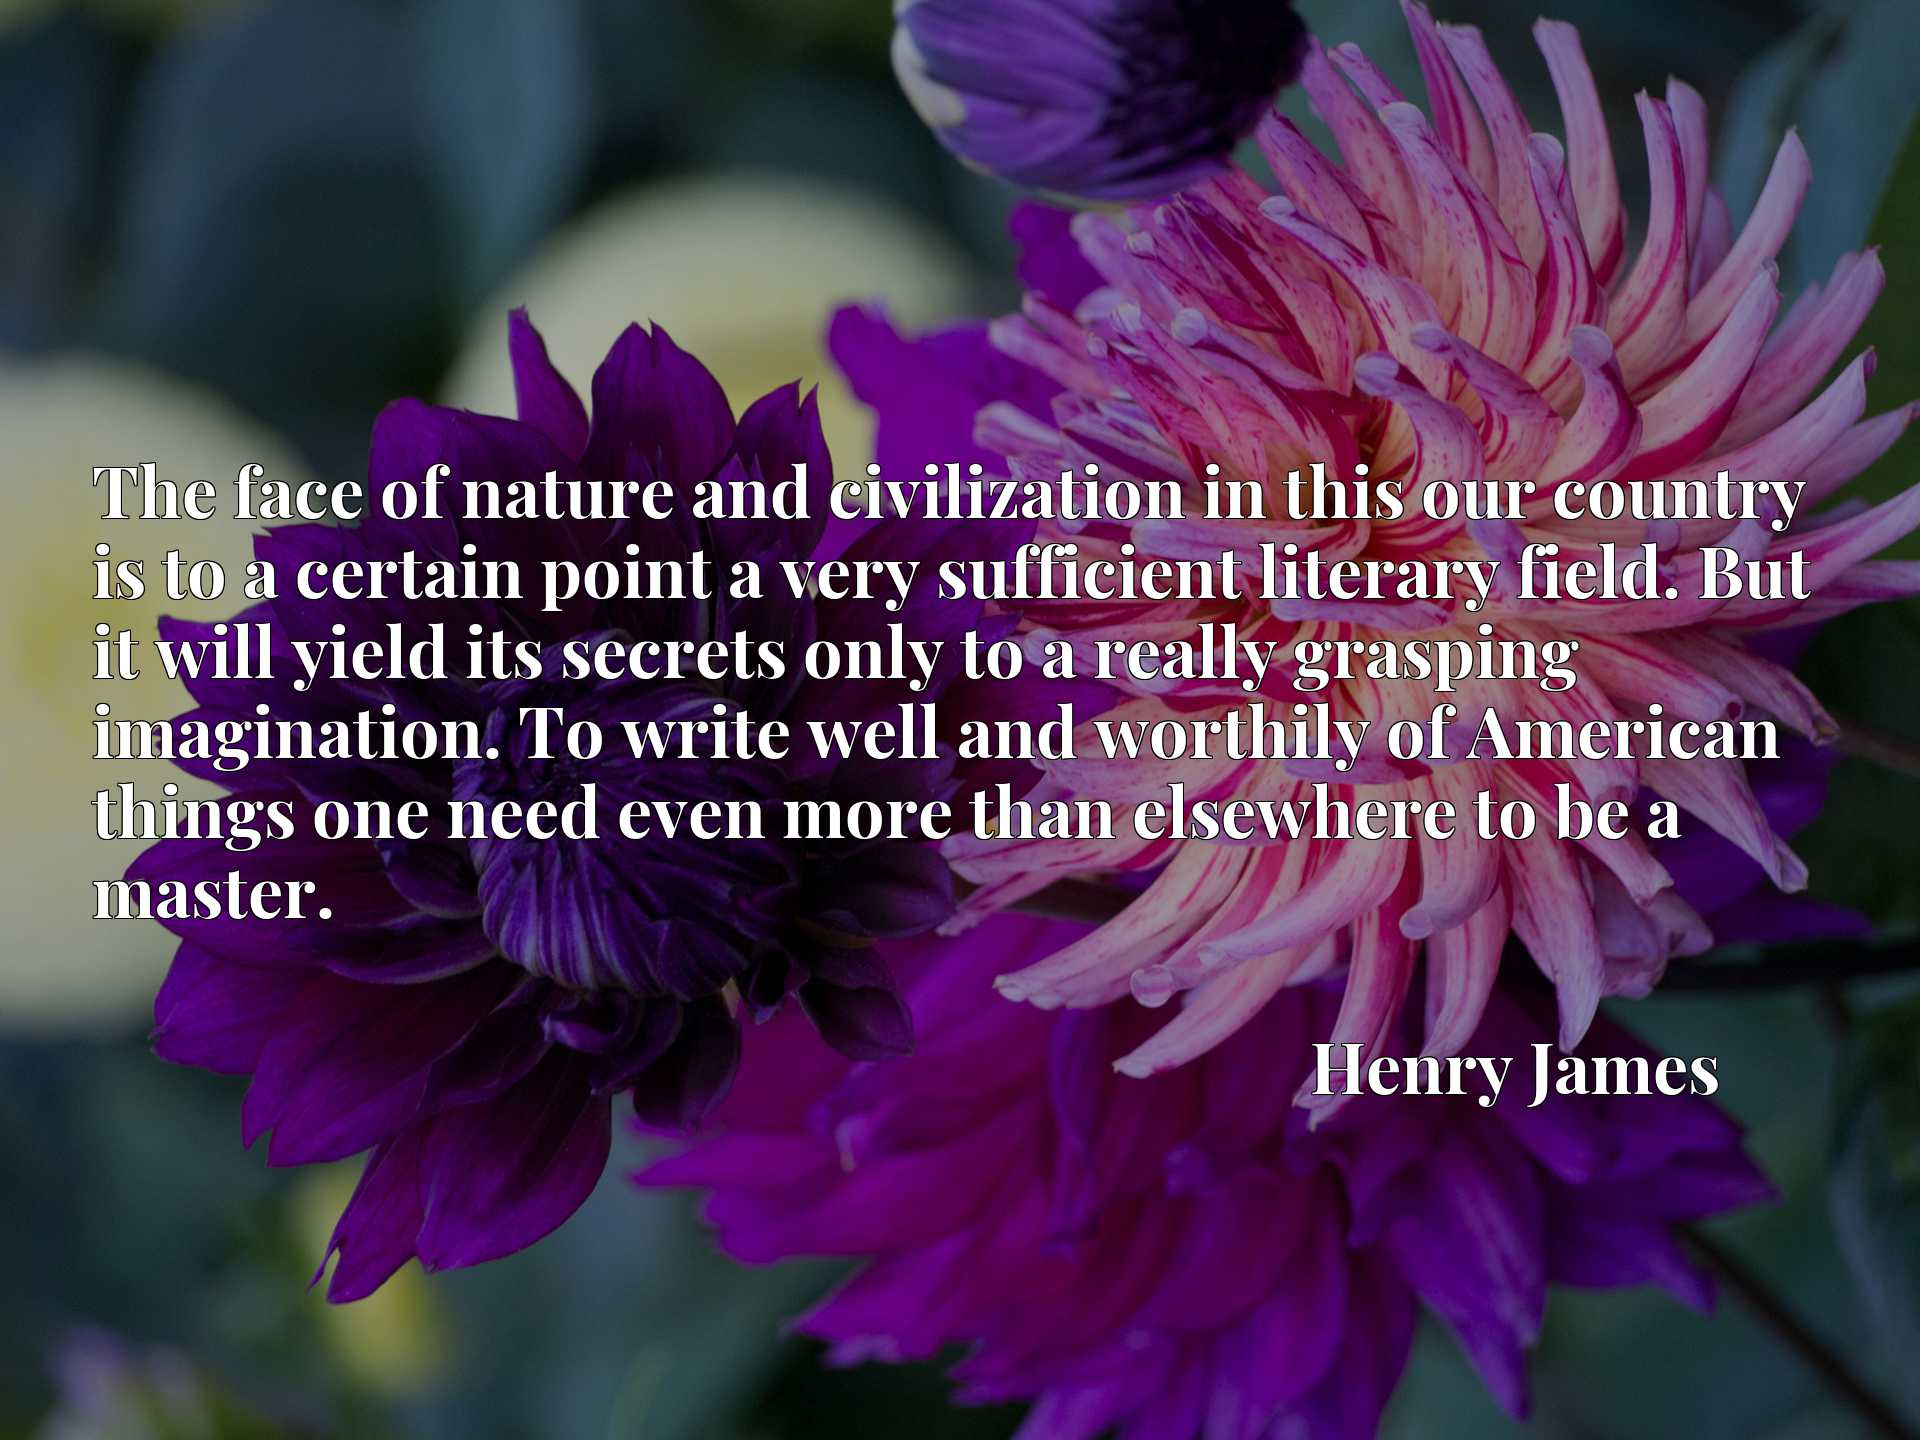 Quote Picture :The face of nature and civilization in this our country is to a certain point a very sufficient literary field. But it will yield its secrets only to a really grasping imagination. To write well and worthily of American things one need even more than elsewhere to be a master.